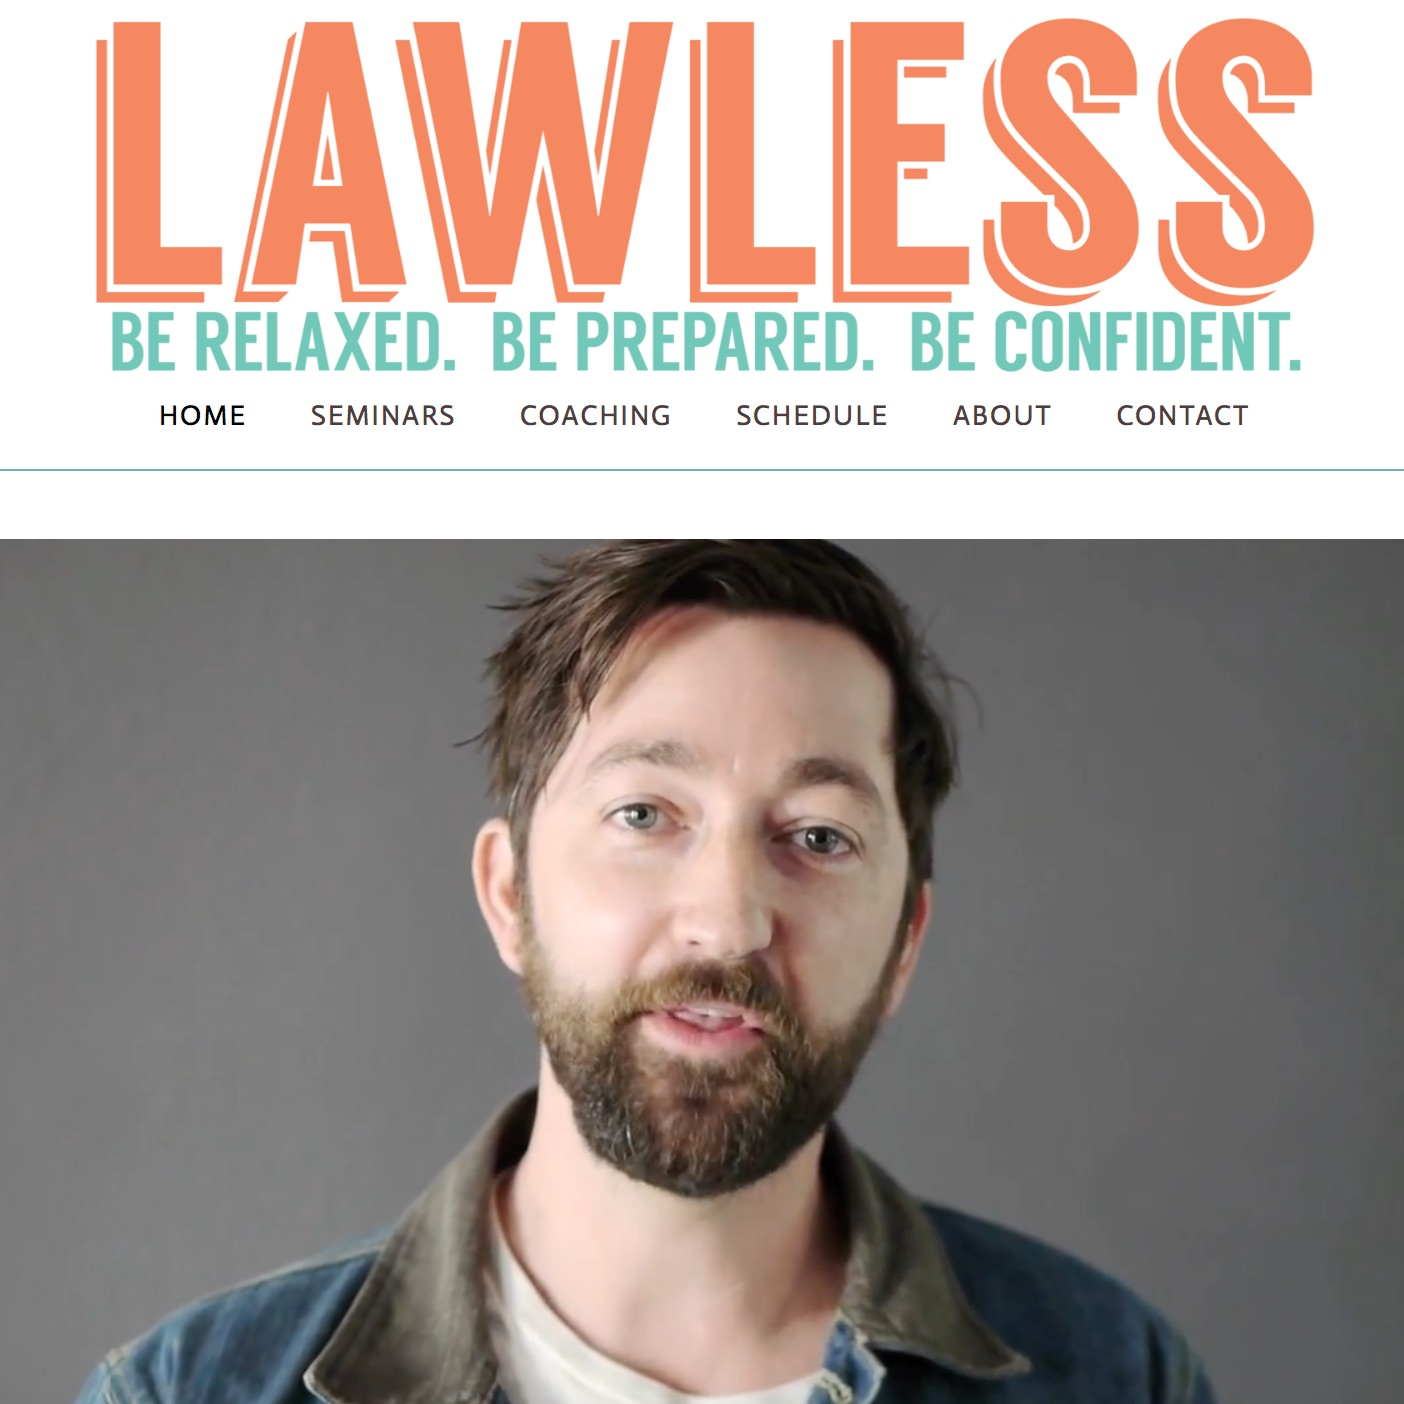 Will Roberts talks to Toby Lawless of Lawless Casting Seminars